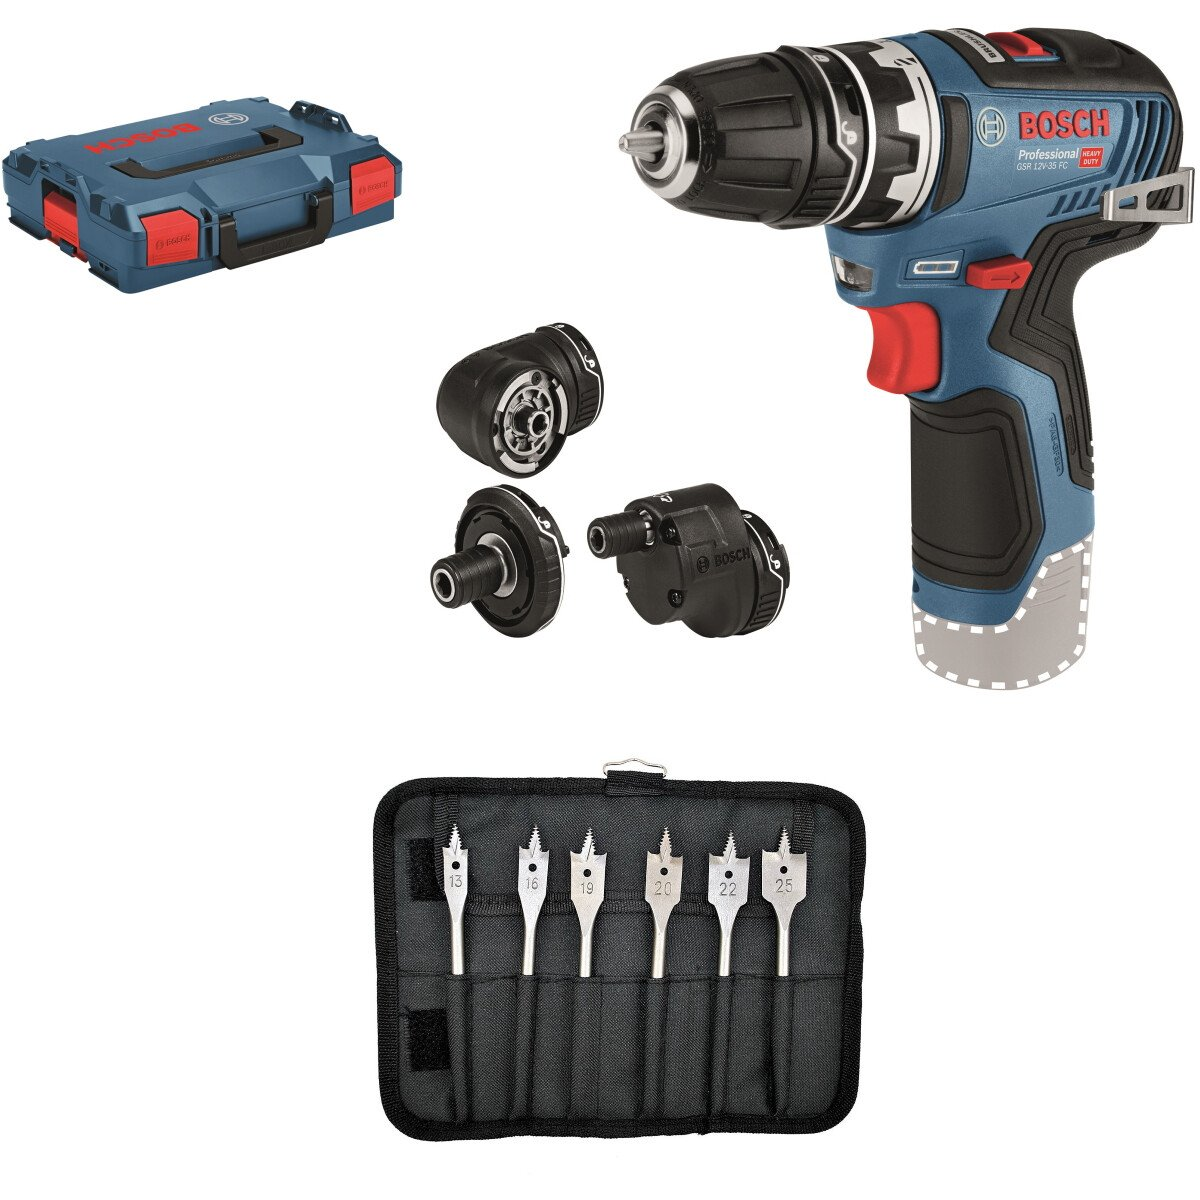 Bosch GSR 12V-35 FC with 6pc Drill Bit Set Body Only 12V Brushless Flexiclick Drill/Driver with Accessory Set In L-BOXX